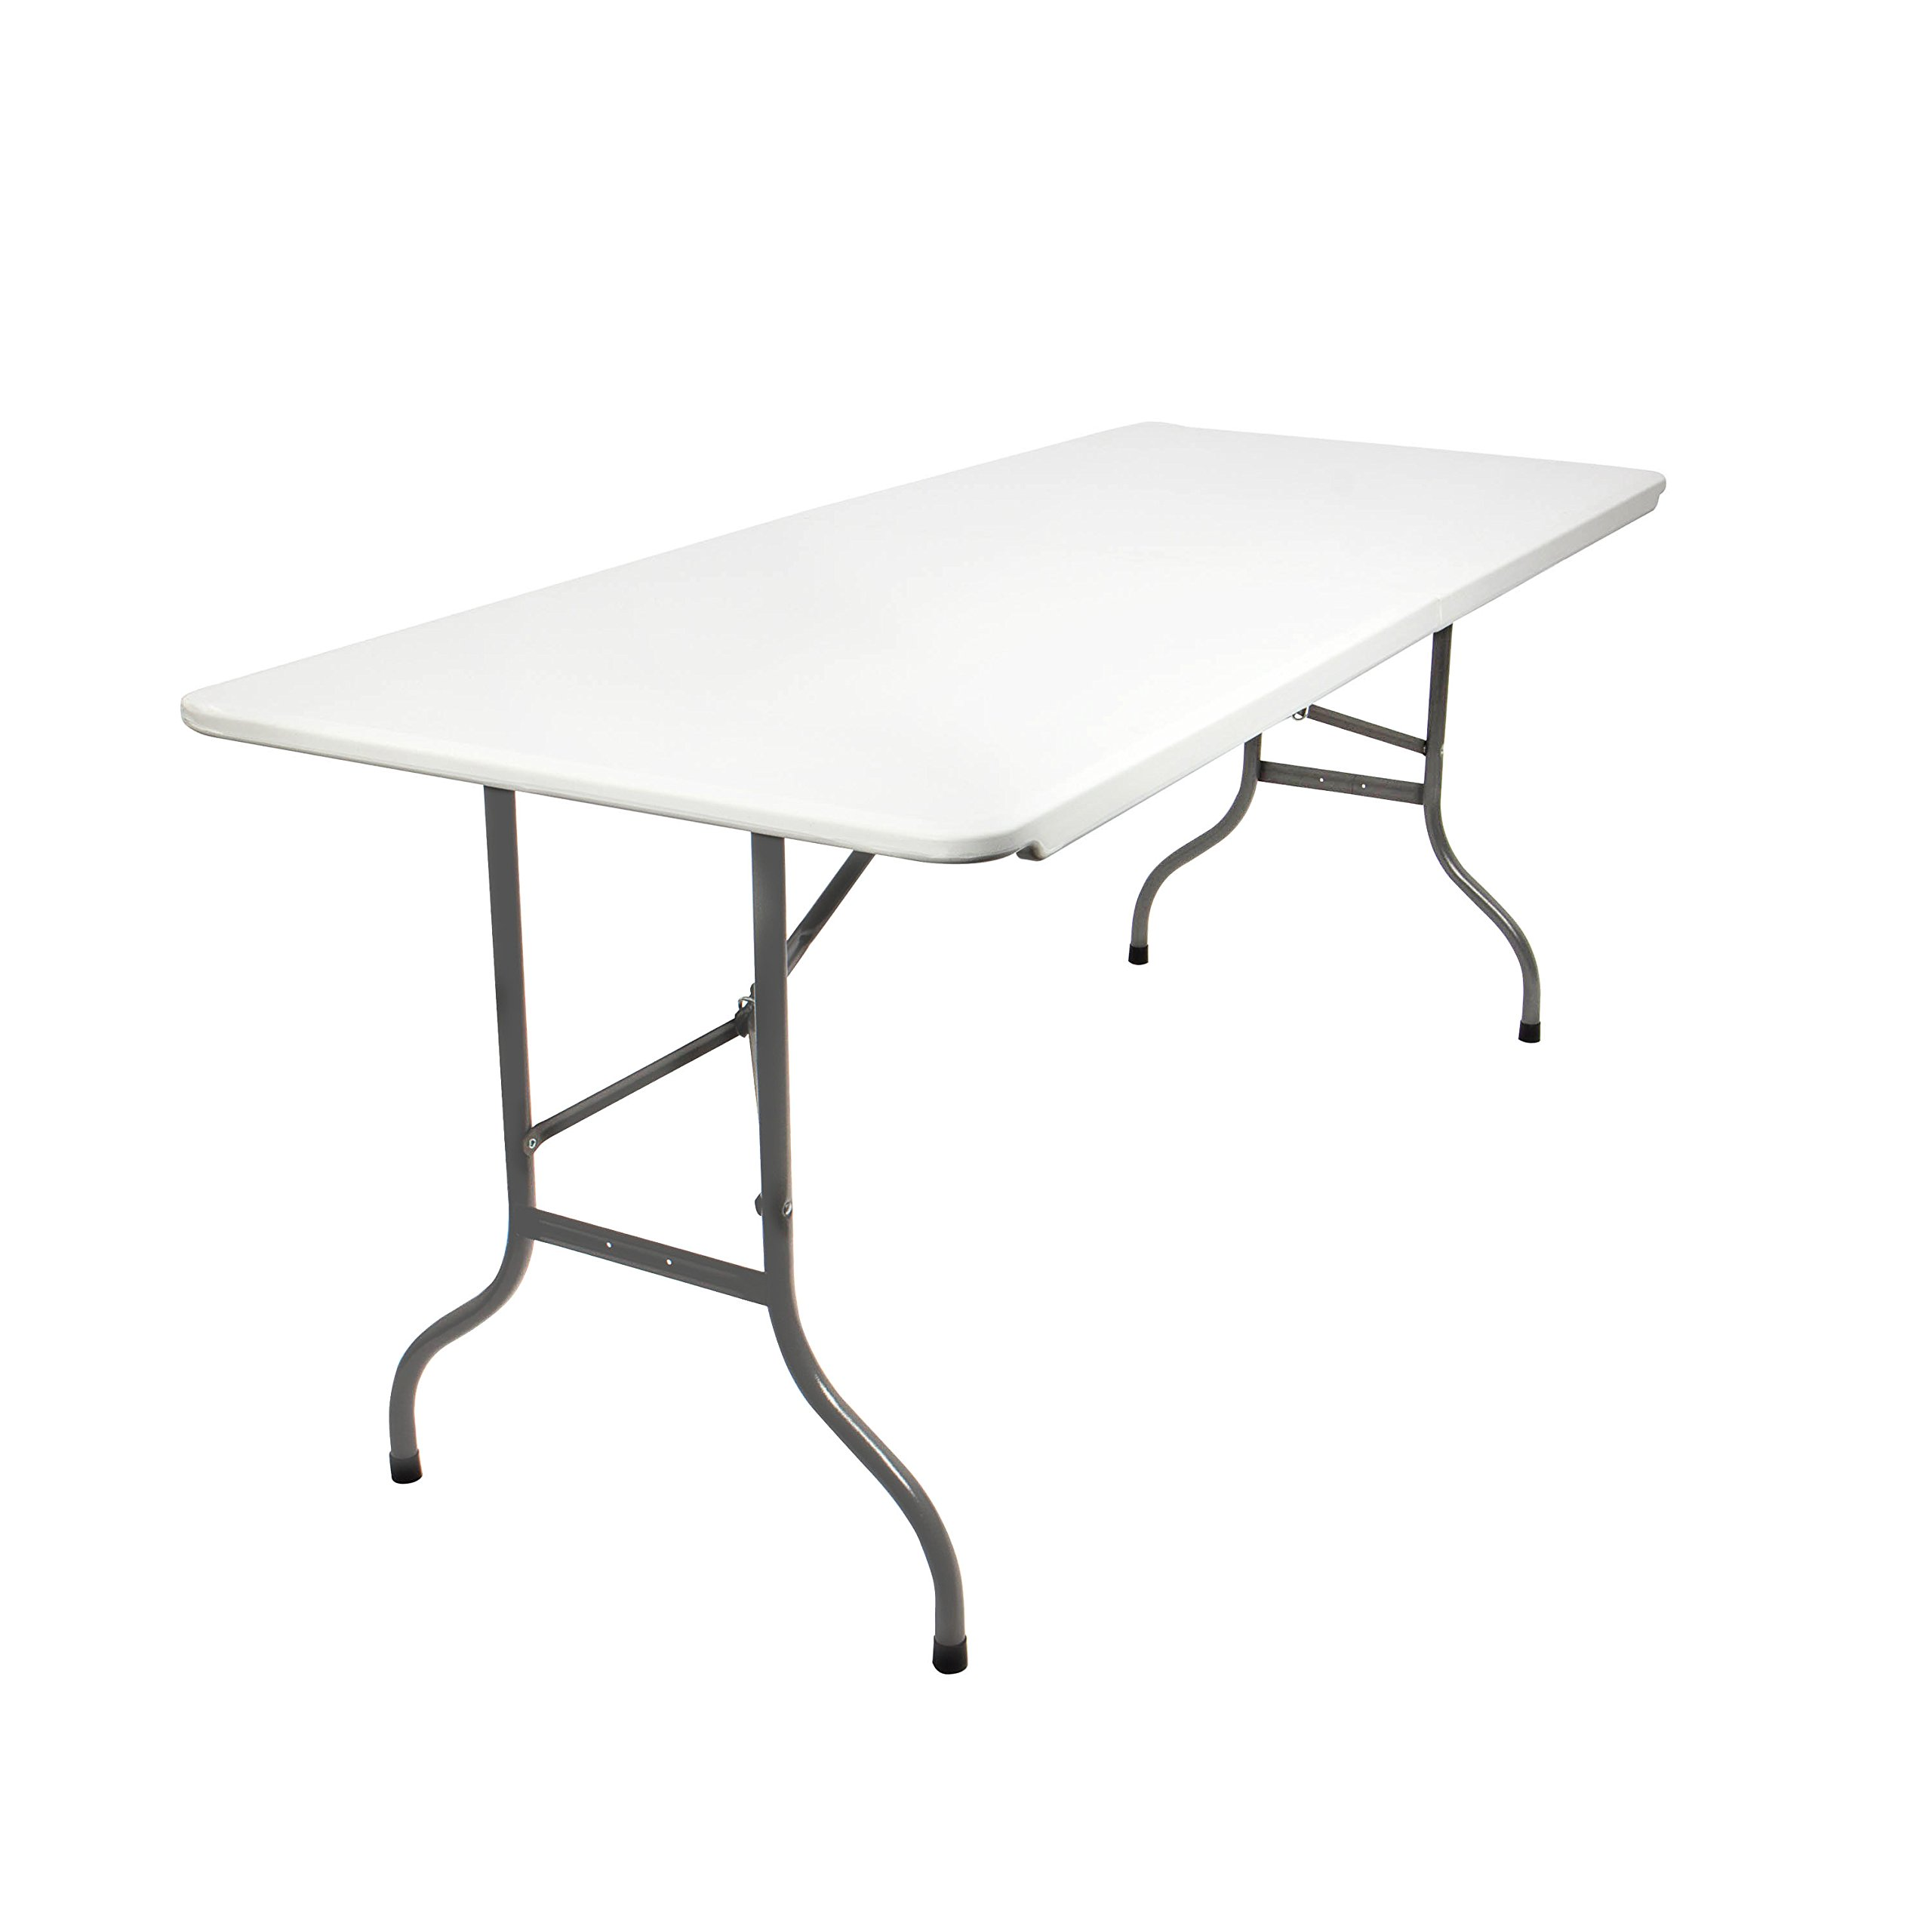 2235b273dbe41 Vanage Garden Table Fred in White - Folding Table Well Suited as a Party  Table or Buffet Table for Garden, Terrace and Balcony - Made of HDPE Plastic  with ...